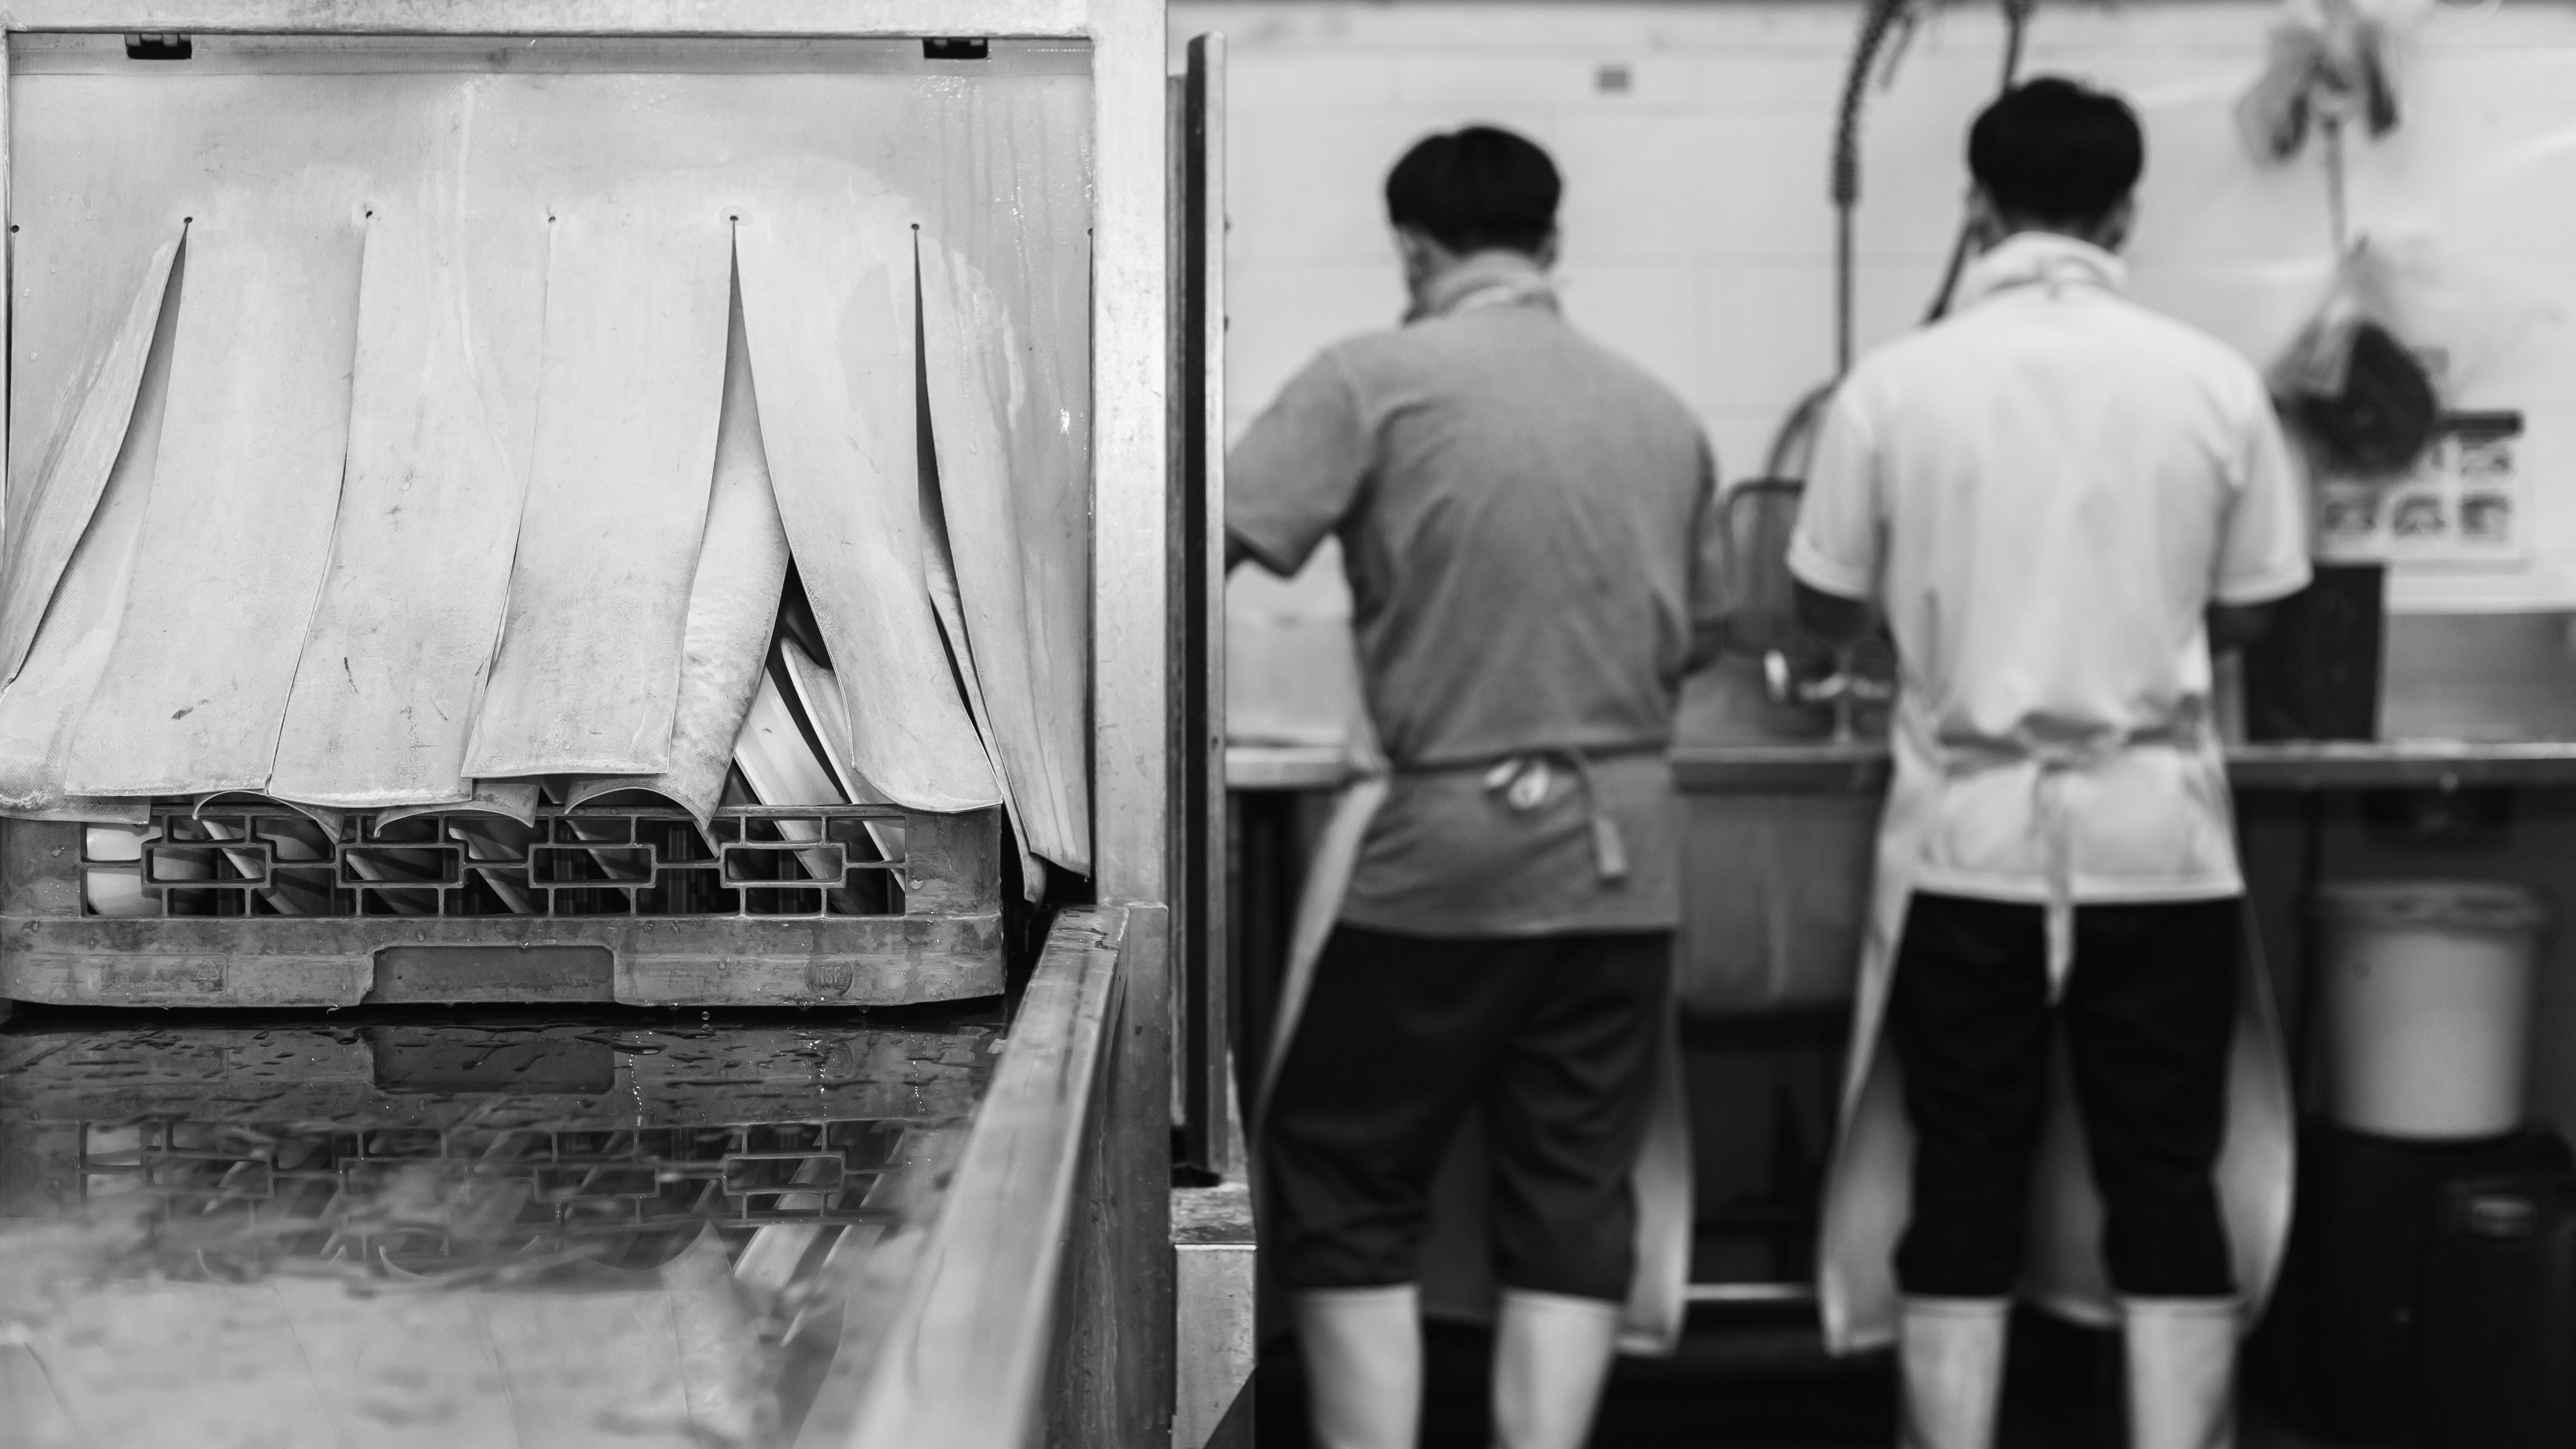 Two men standing in front of a restaurant dish pit, as seen from behind and in black and white.